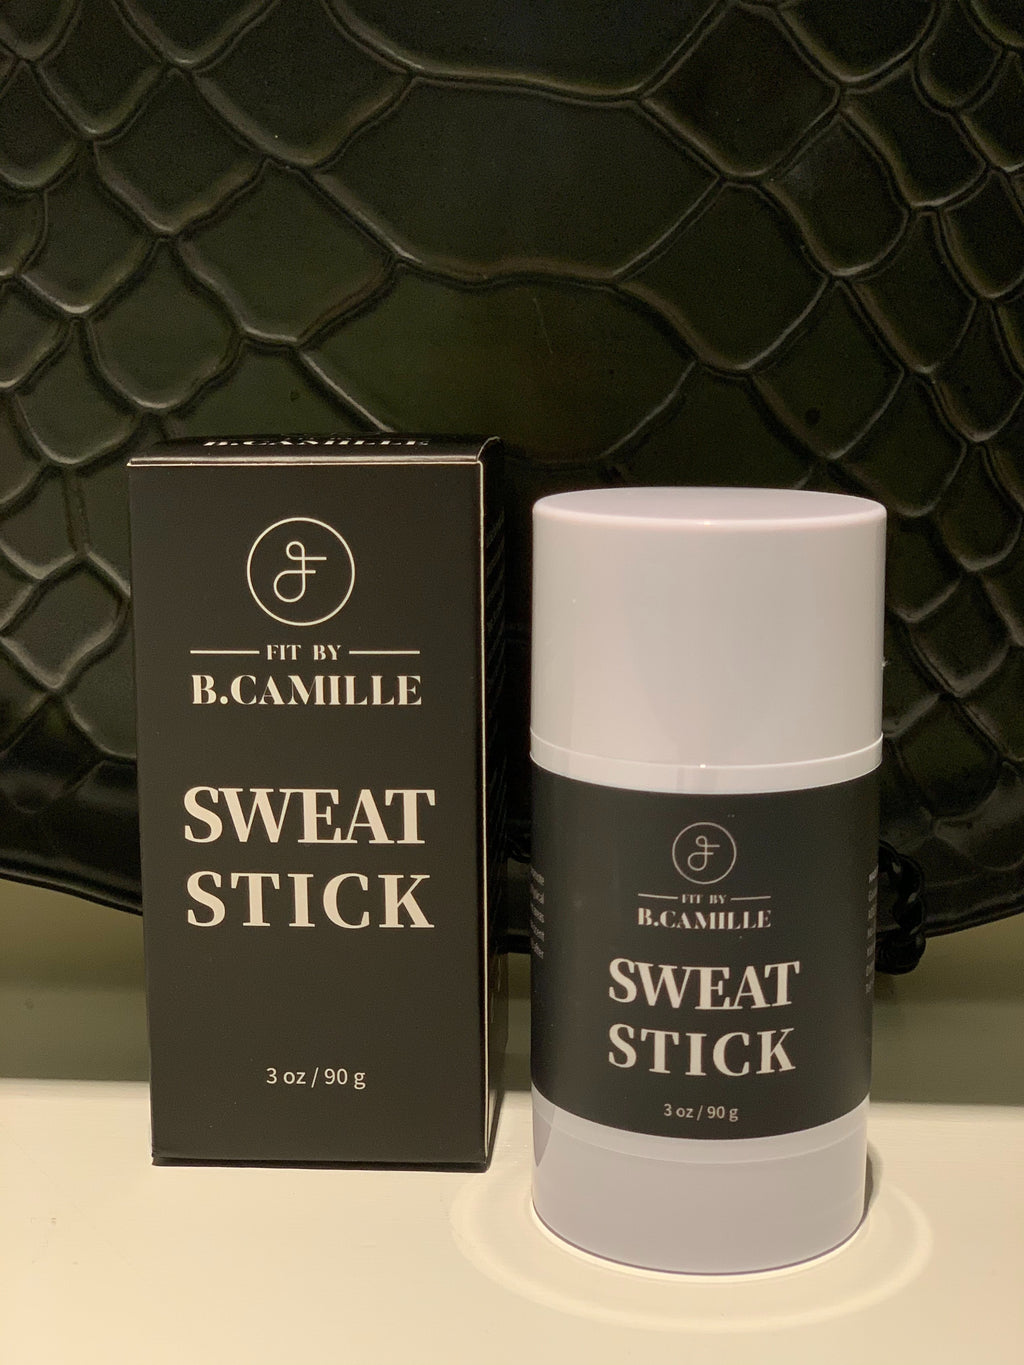 Fit By B.Camille Sweat Stick